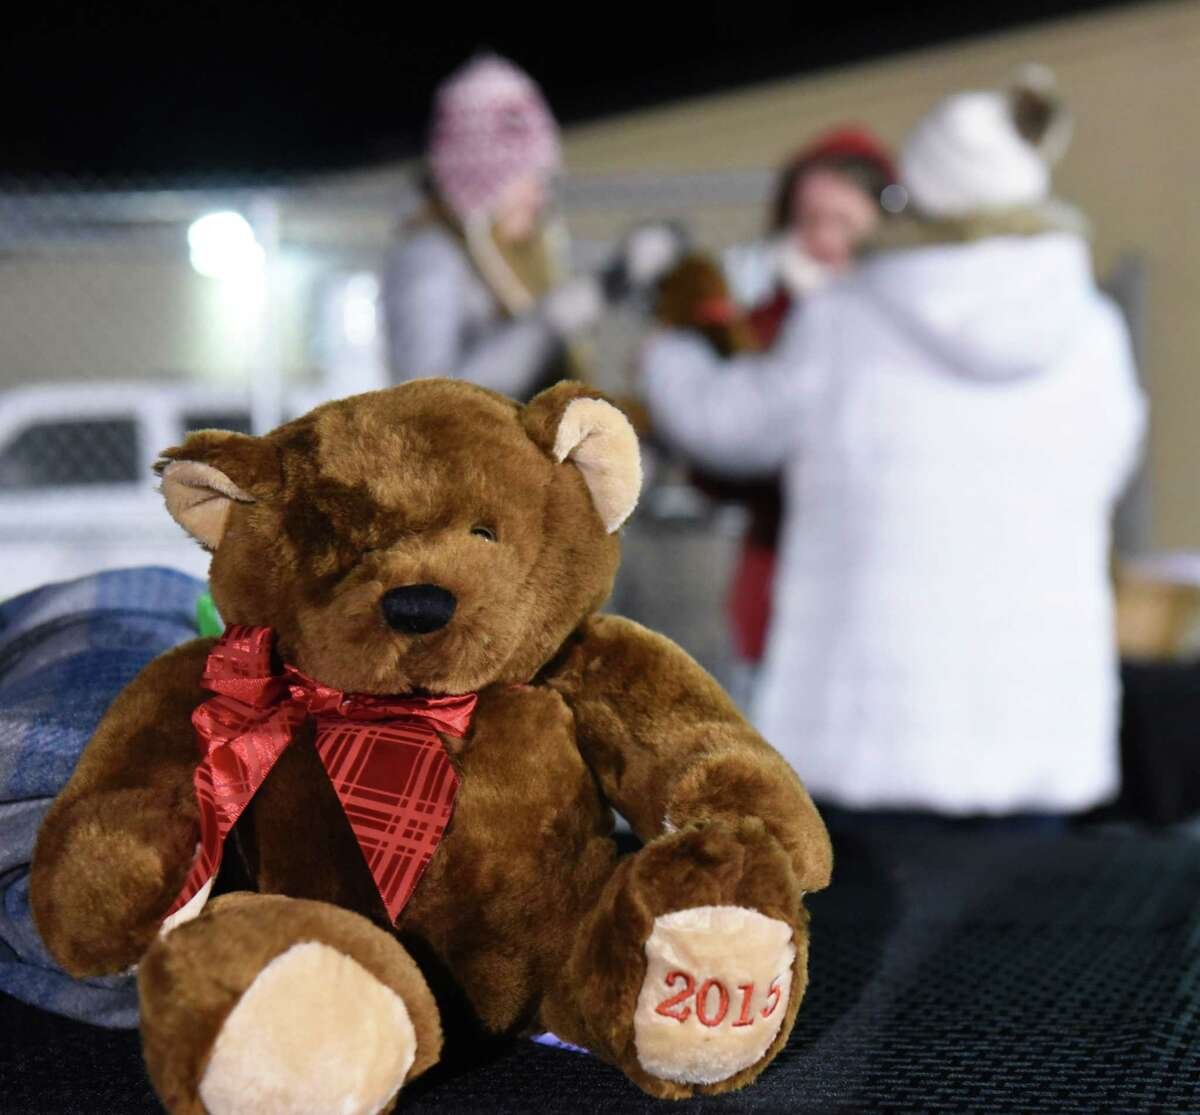 Buddy Blankets & Bears charity hands out blankets and Emma bears to people as they arrive to attend a vigil to honor seventh-grader Emma Jones at the Ballston Spa High School football field on Tuesday, Dec. 18, 2018 in Ballston Spa, N.Y. Jones was killed as part of what police say was a murder-suicide. (Lori Van Buren/Times Union)